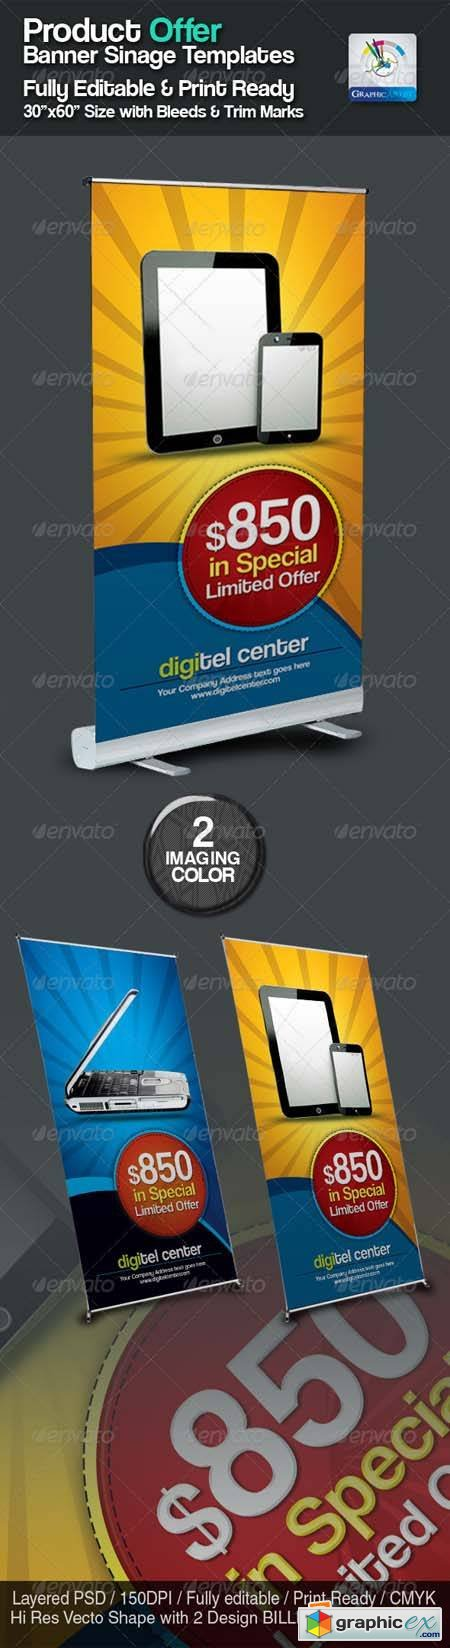 Product Offer Banner Sinage Templates